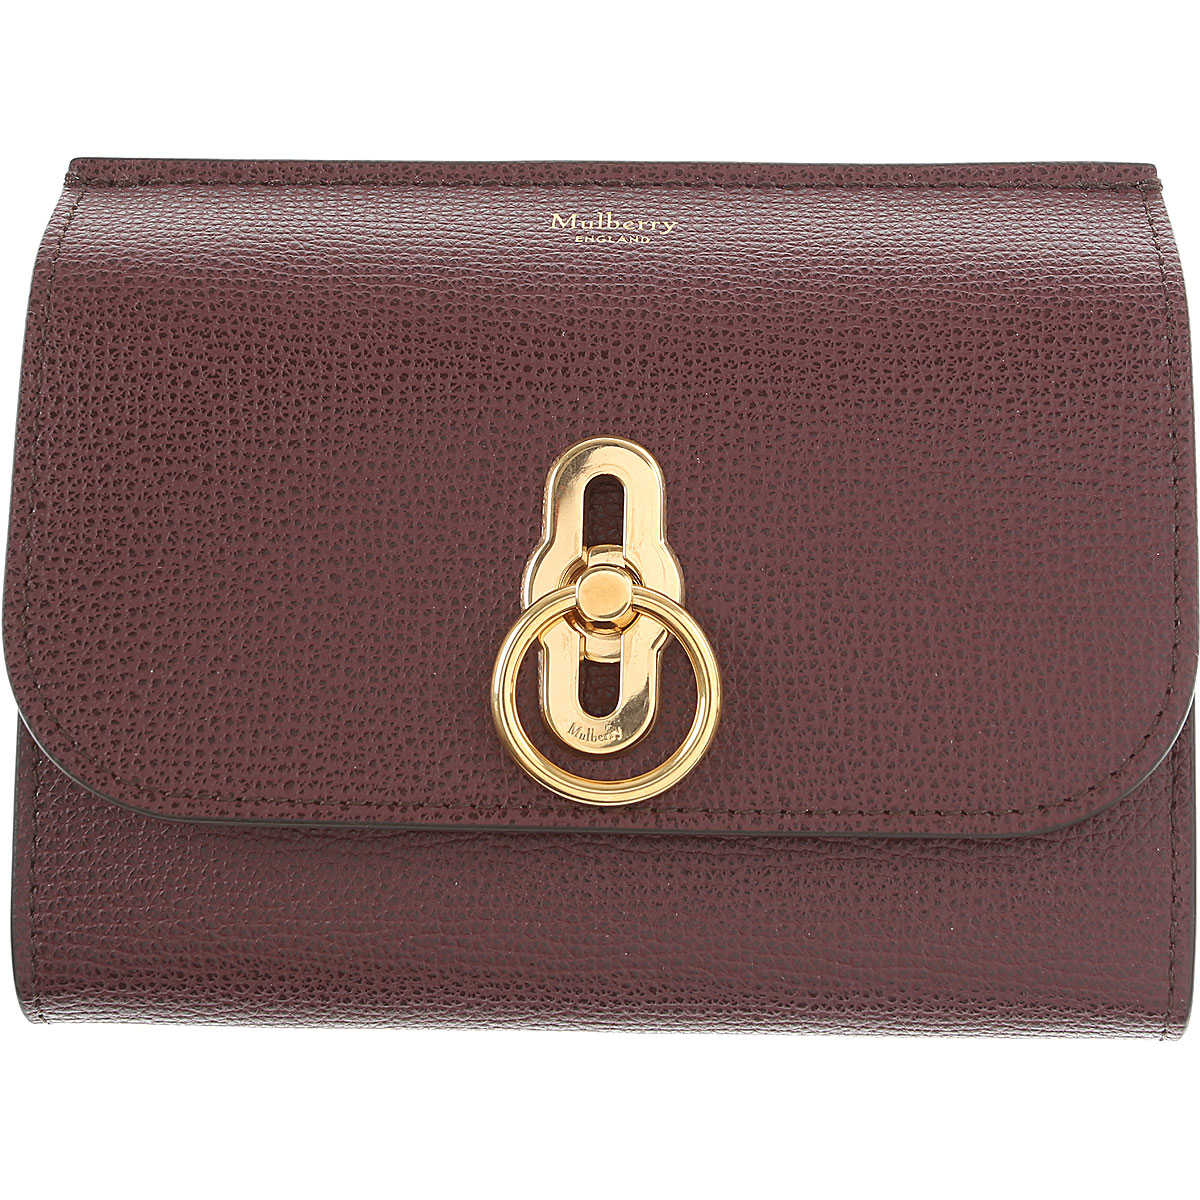 Mulberry Wallet for Women